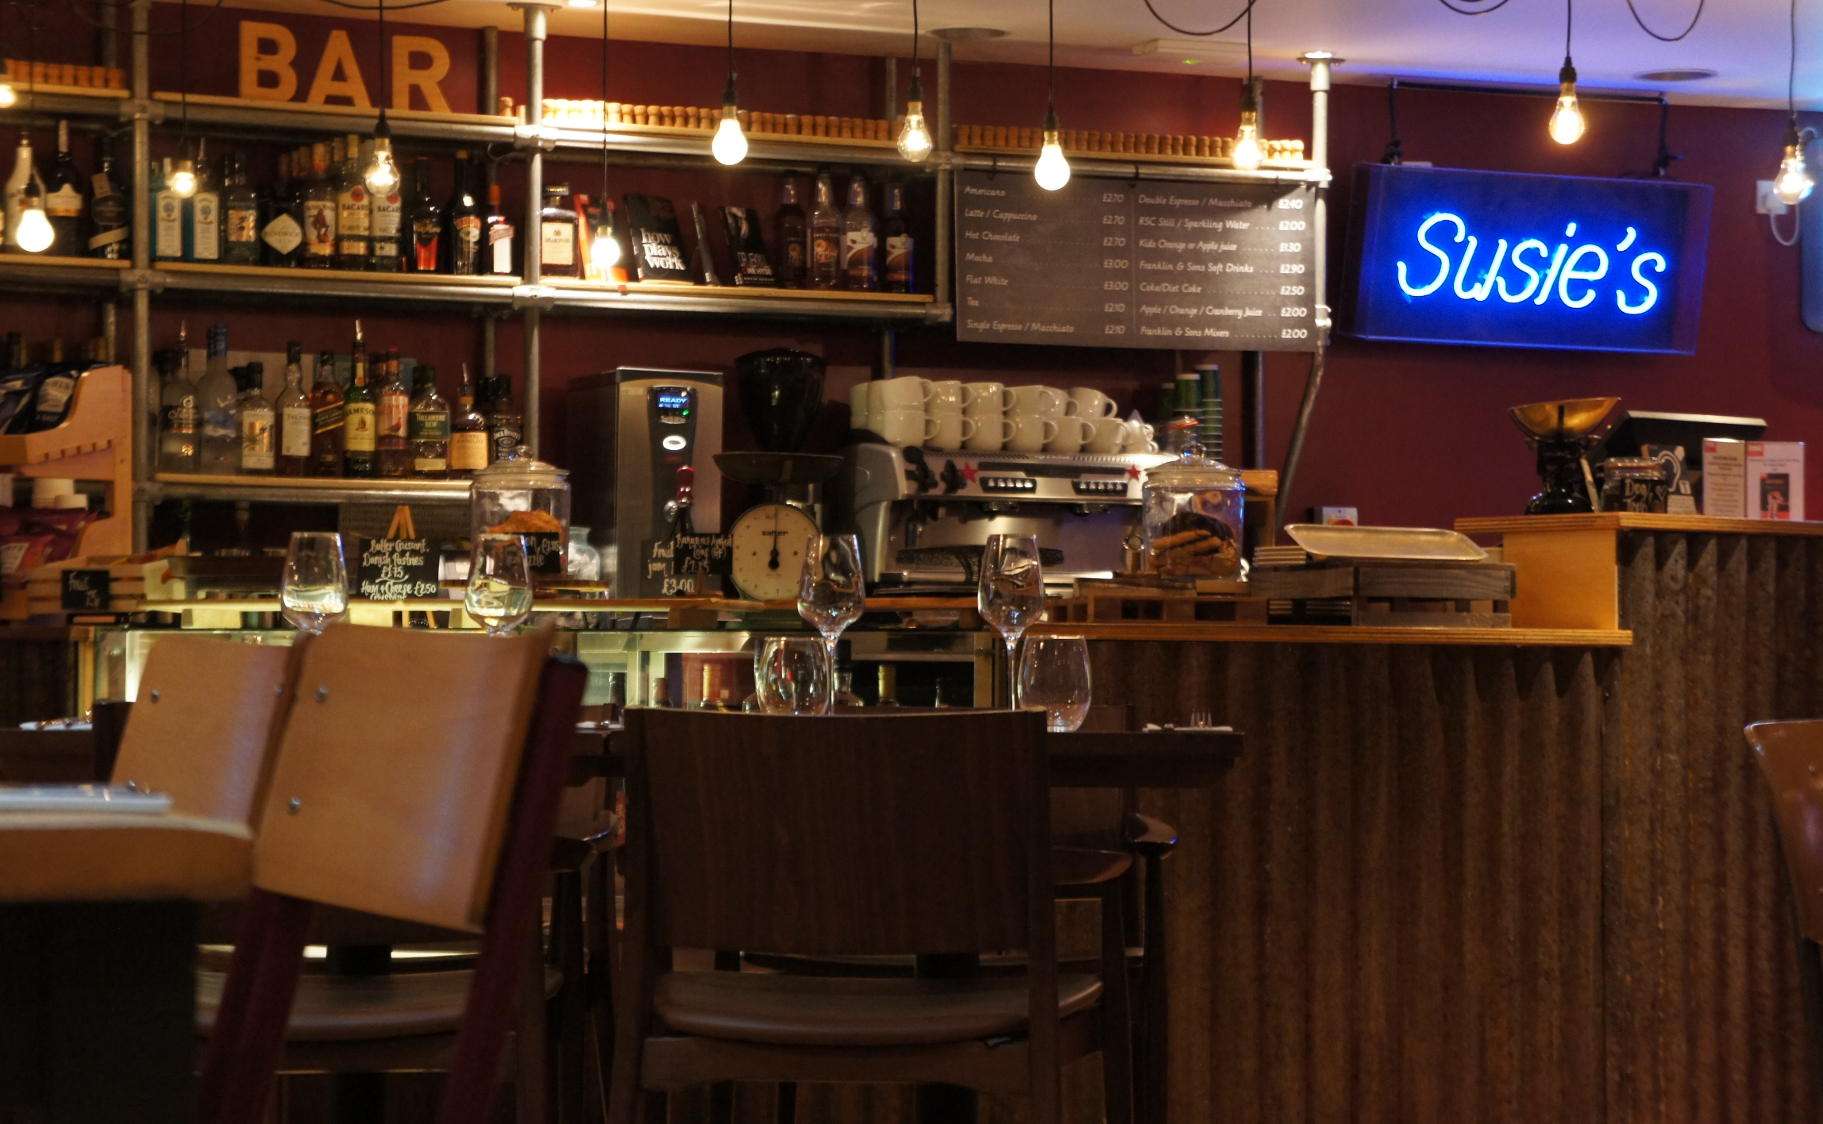 Susie's cafe bar